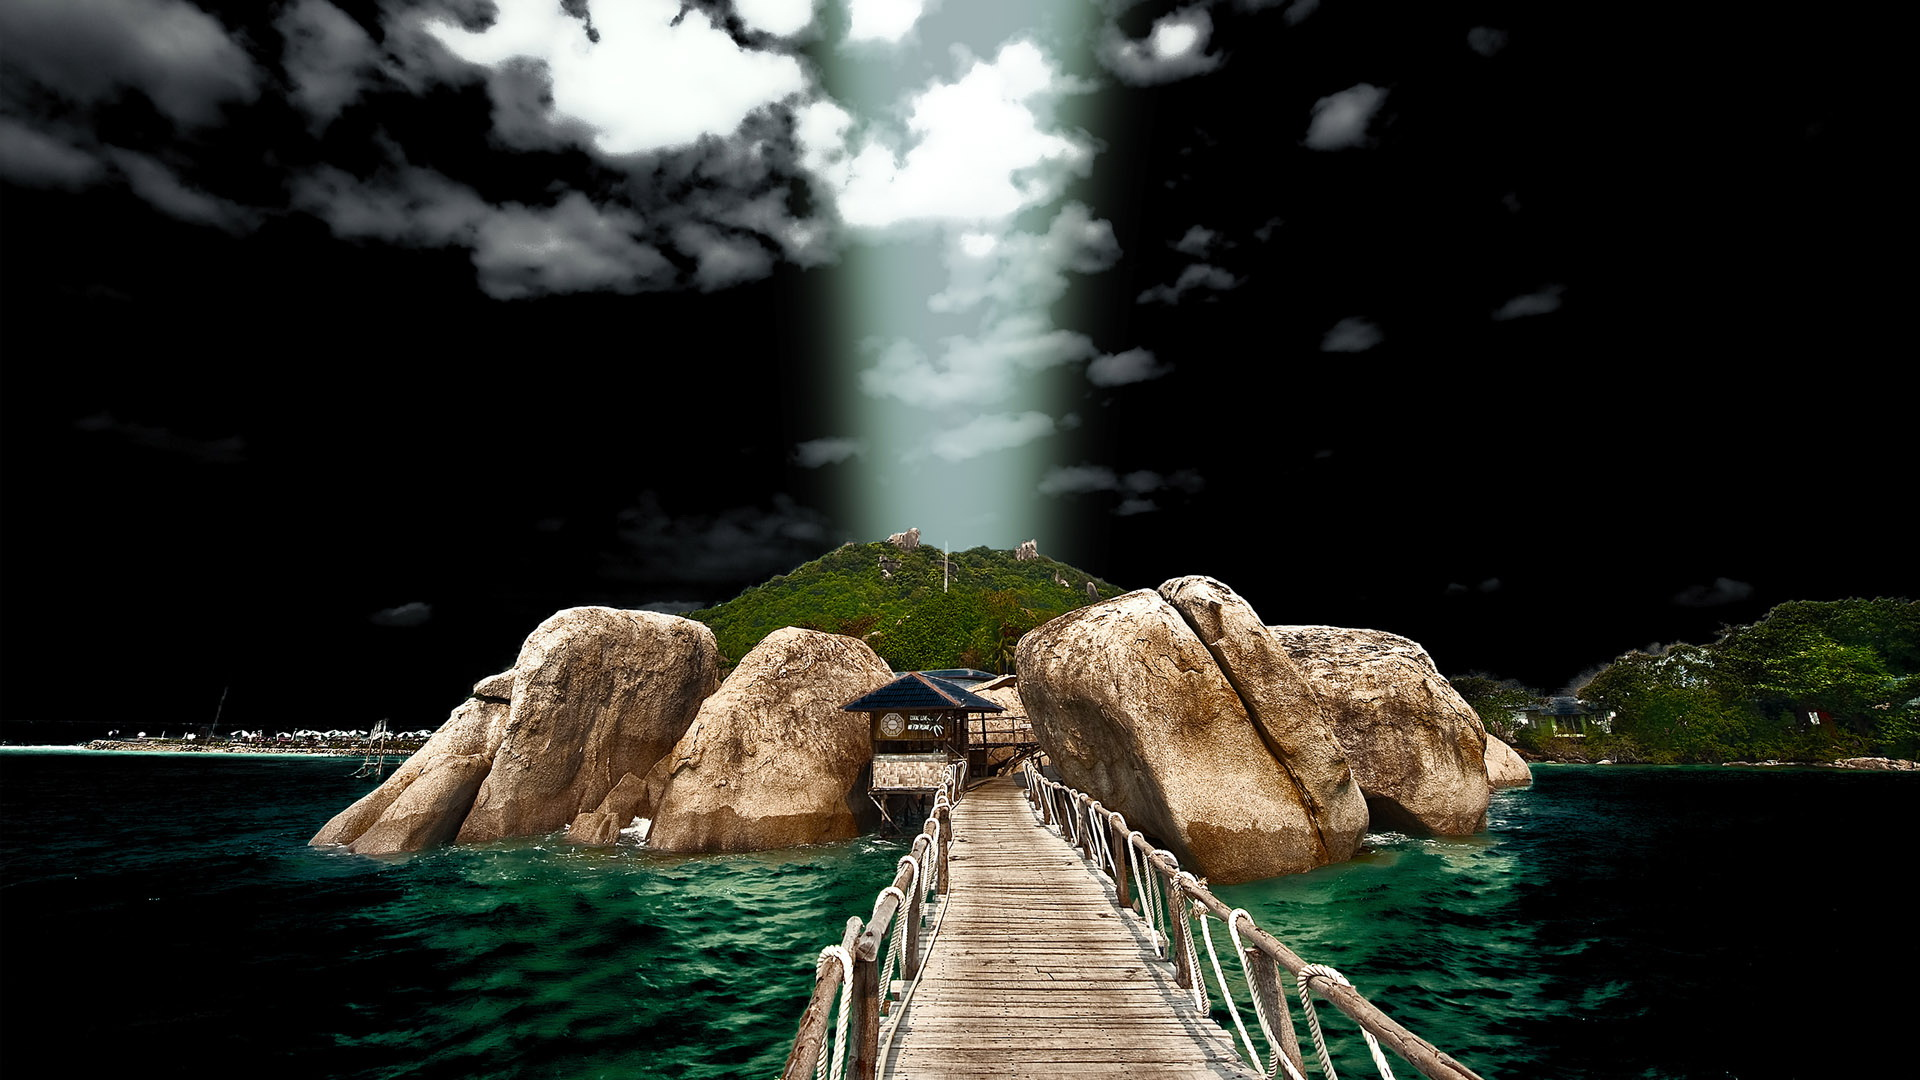 click to free download the wallpaper--Images of Natural Scene - A Wooden and Clean Bridge Across the Blue Sea, Lightning from Heaven 1920X1080 free wallpaper download